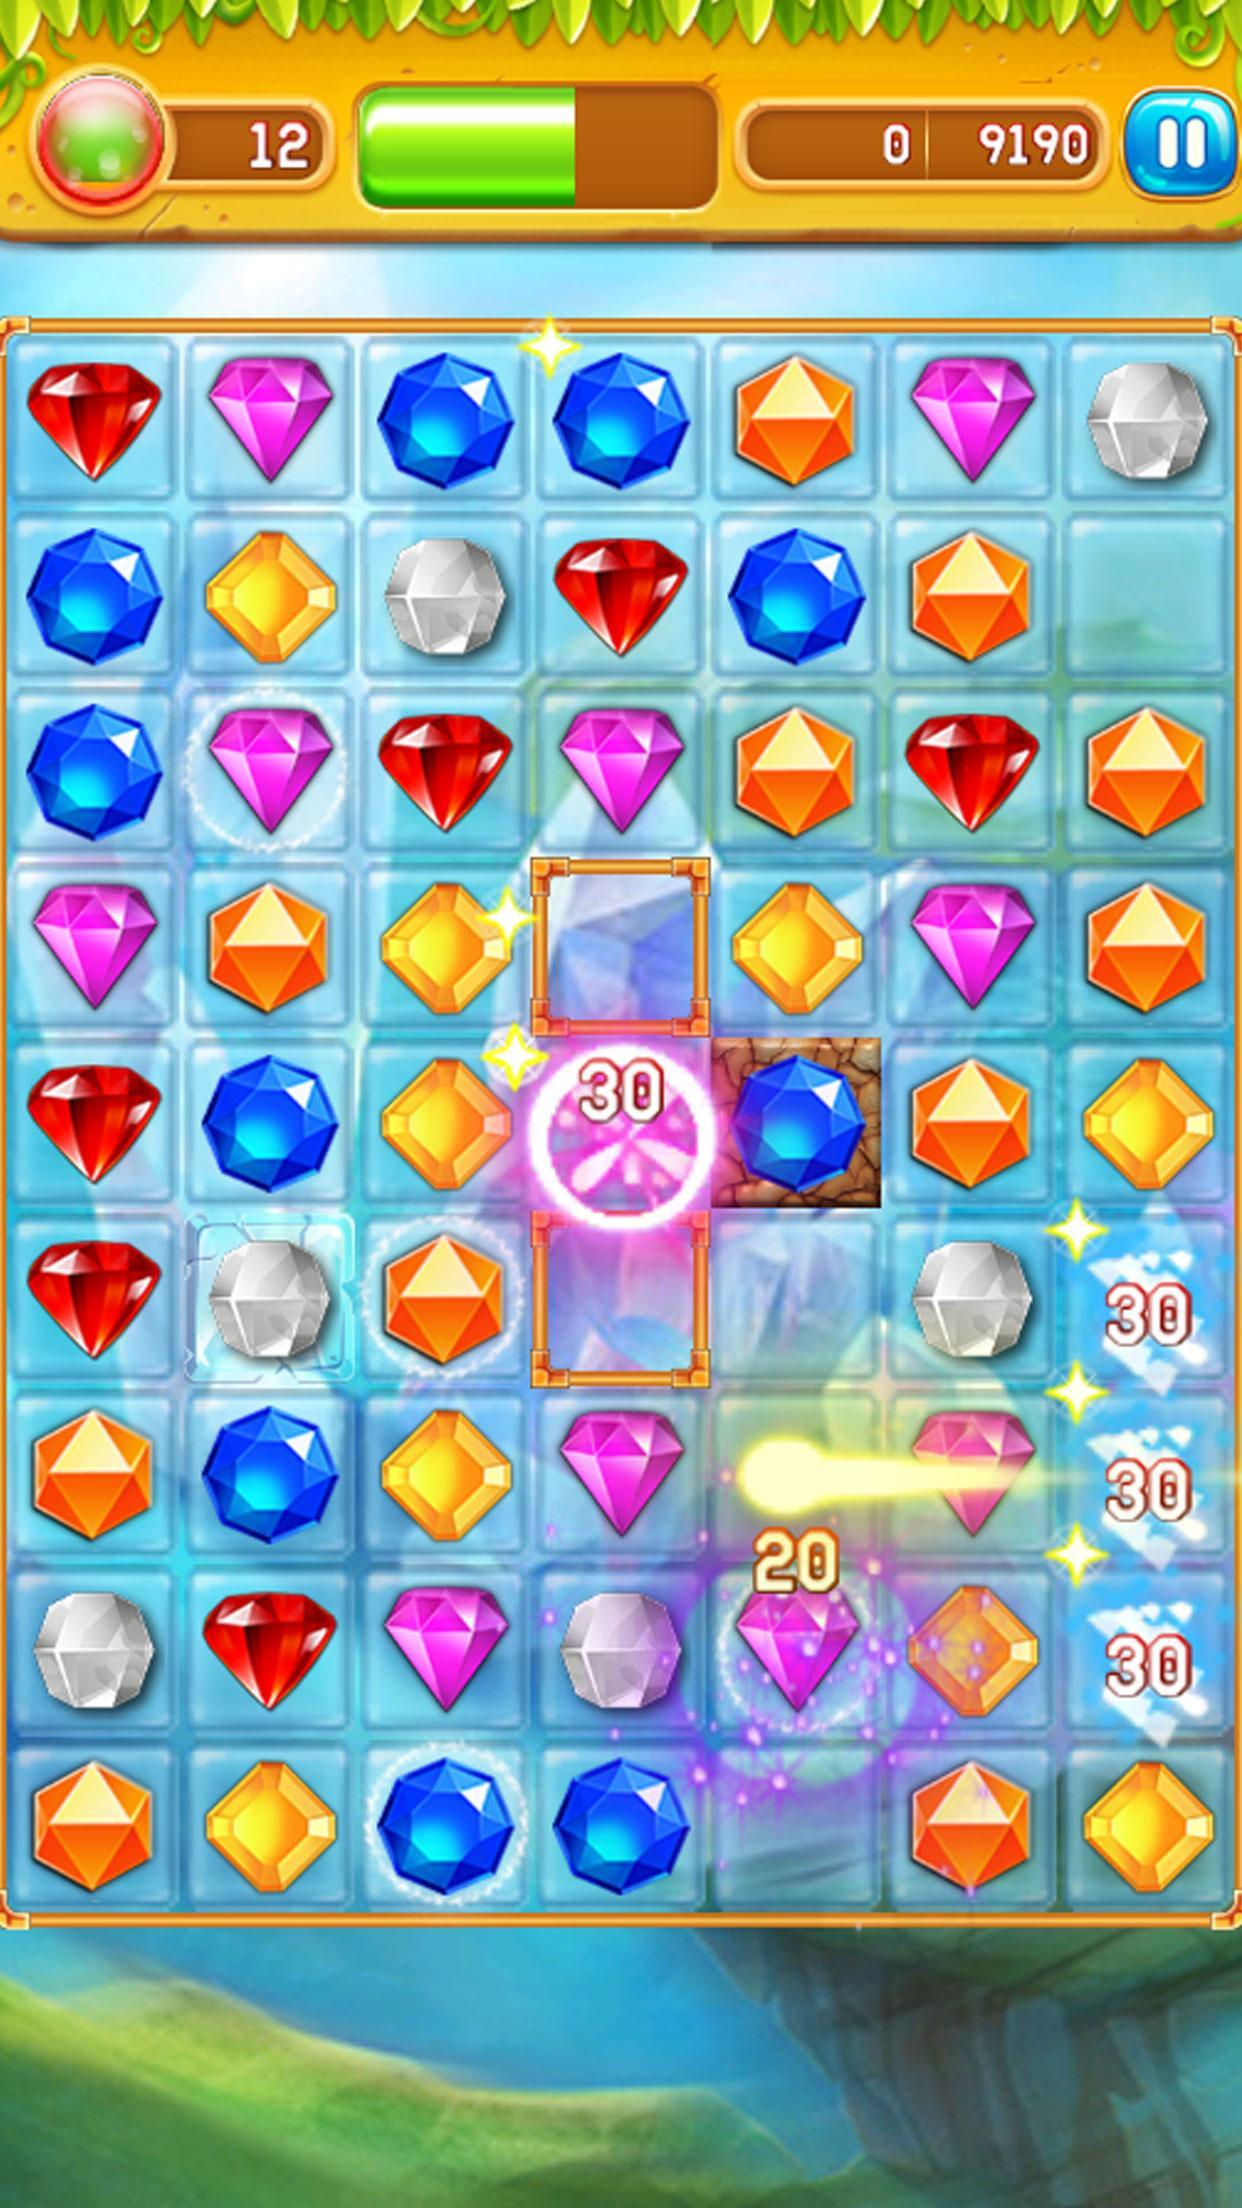 Bejeweled Stars 2017 for Android - APK Download